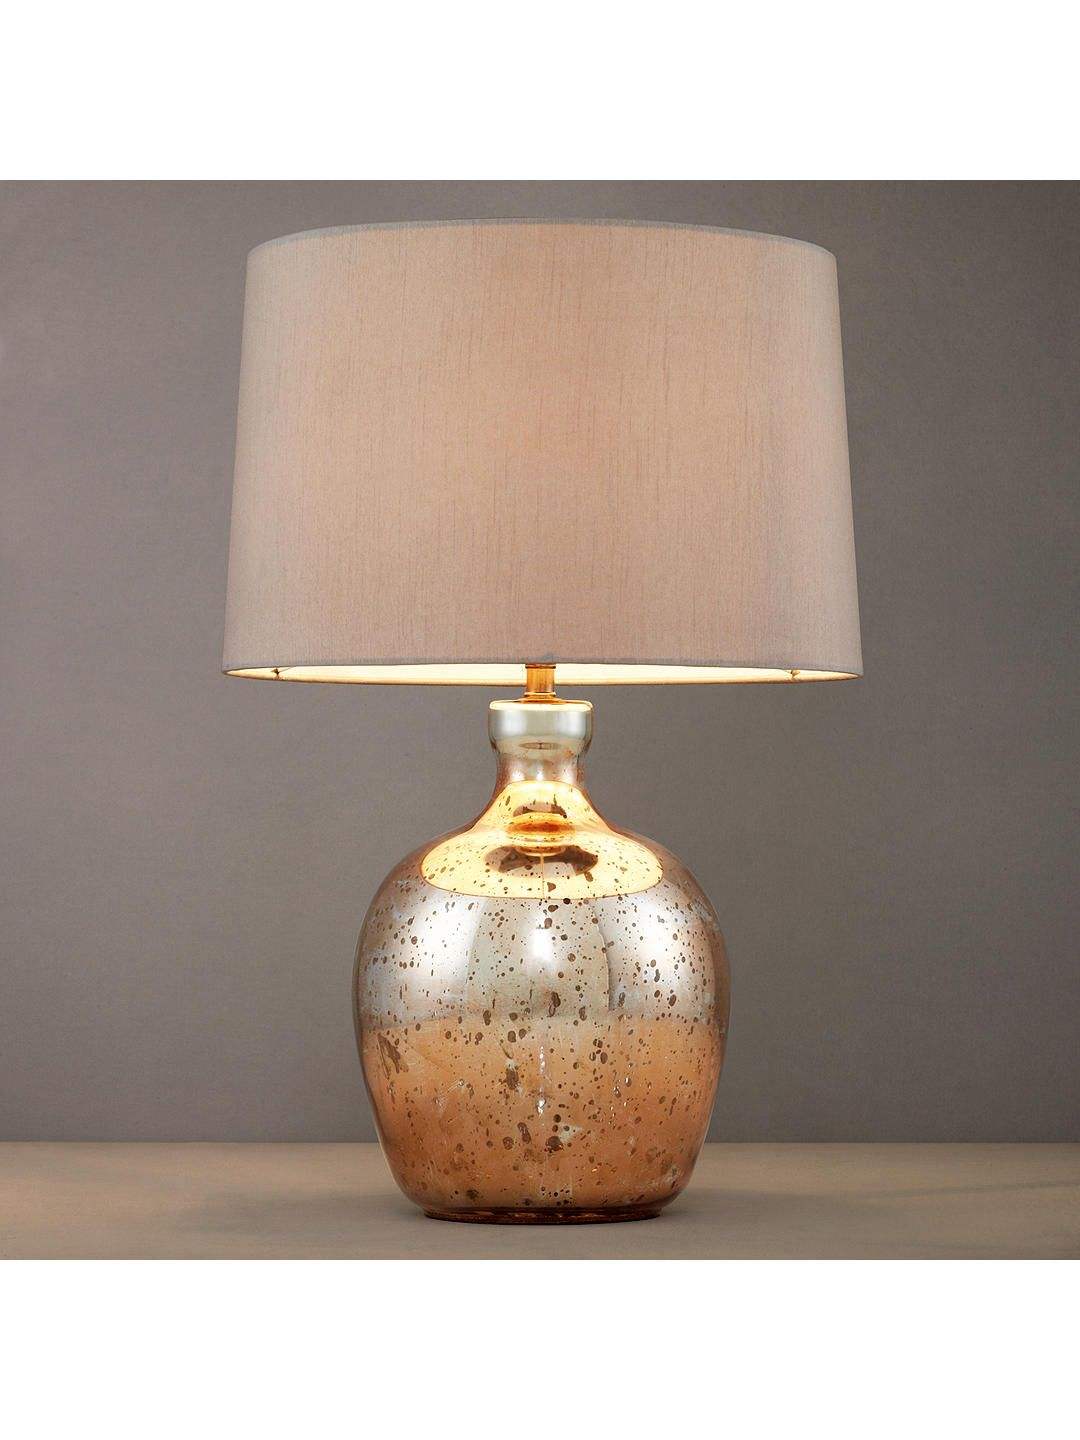 Lamps Online John Lewis Partners Tabitha Copper Table Lamp In 2019 Fire